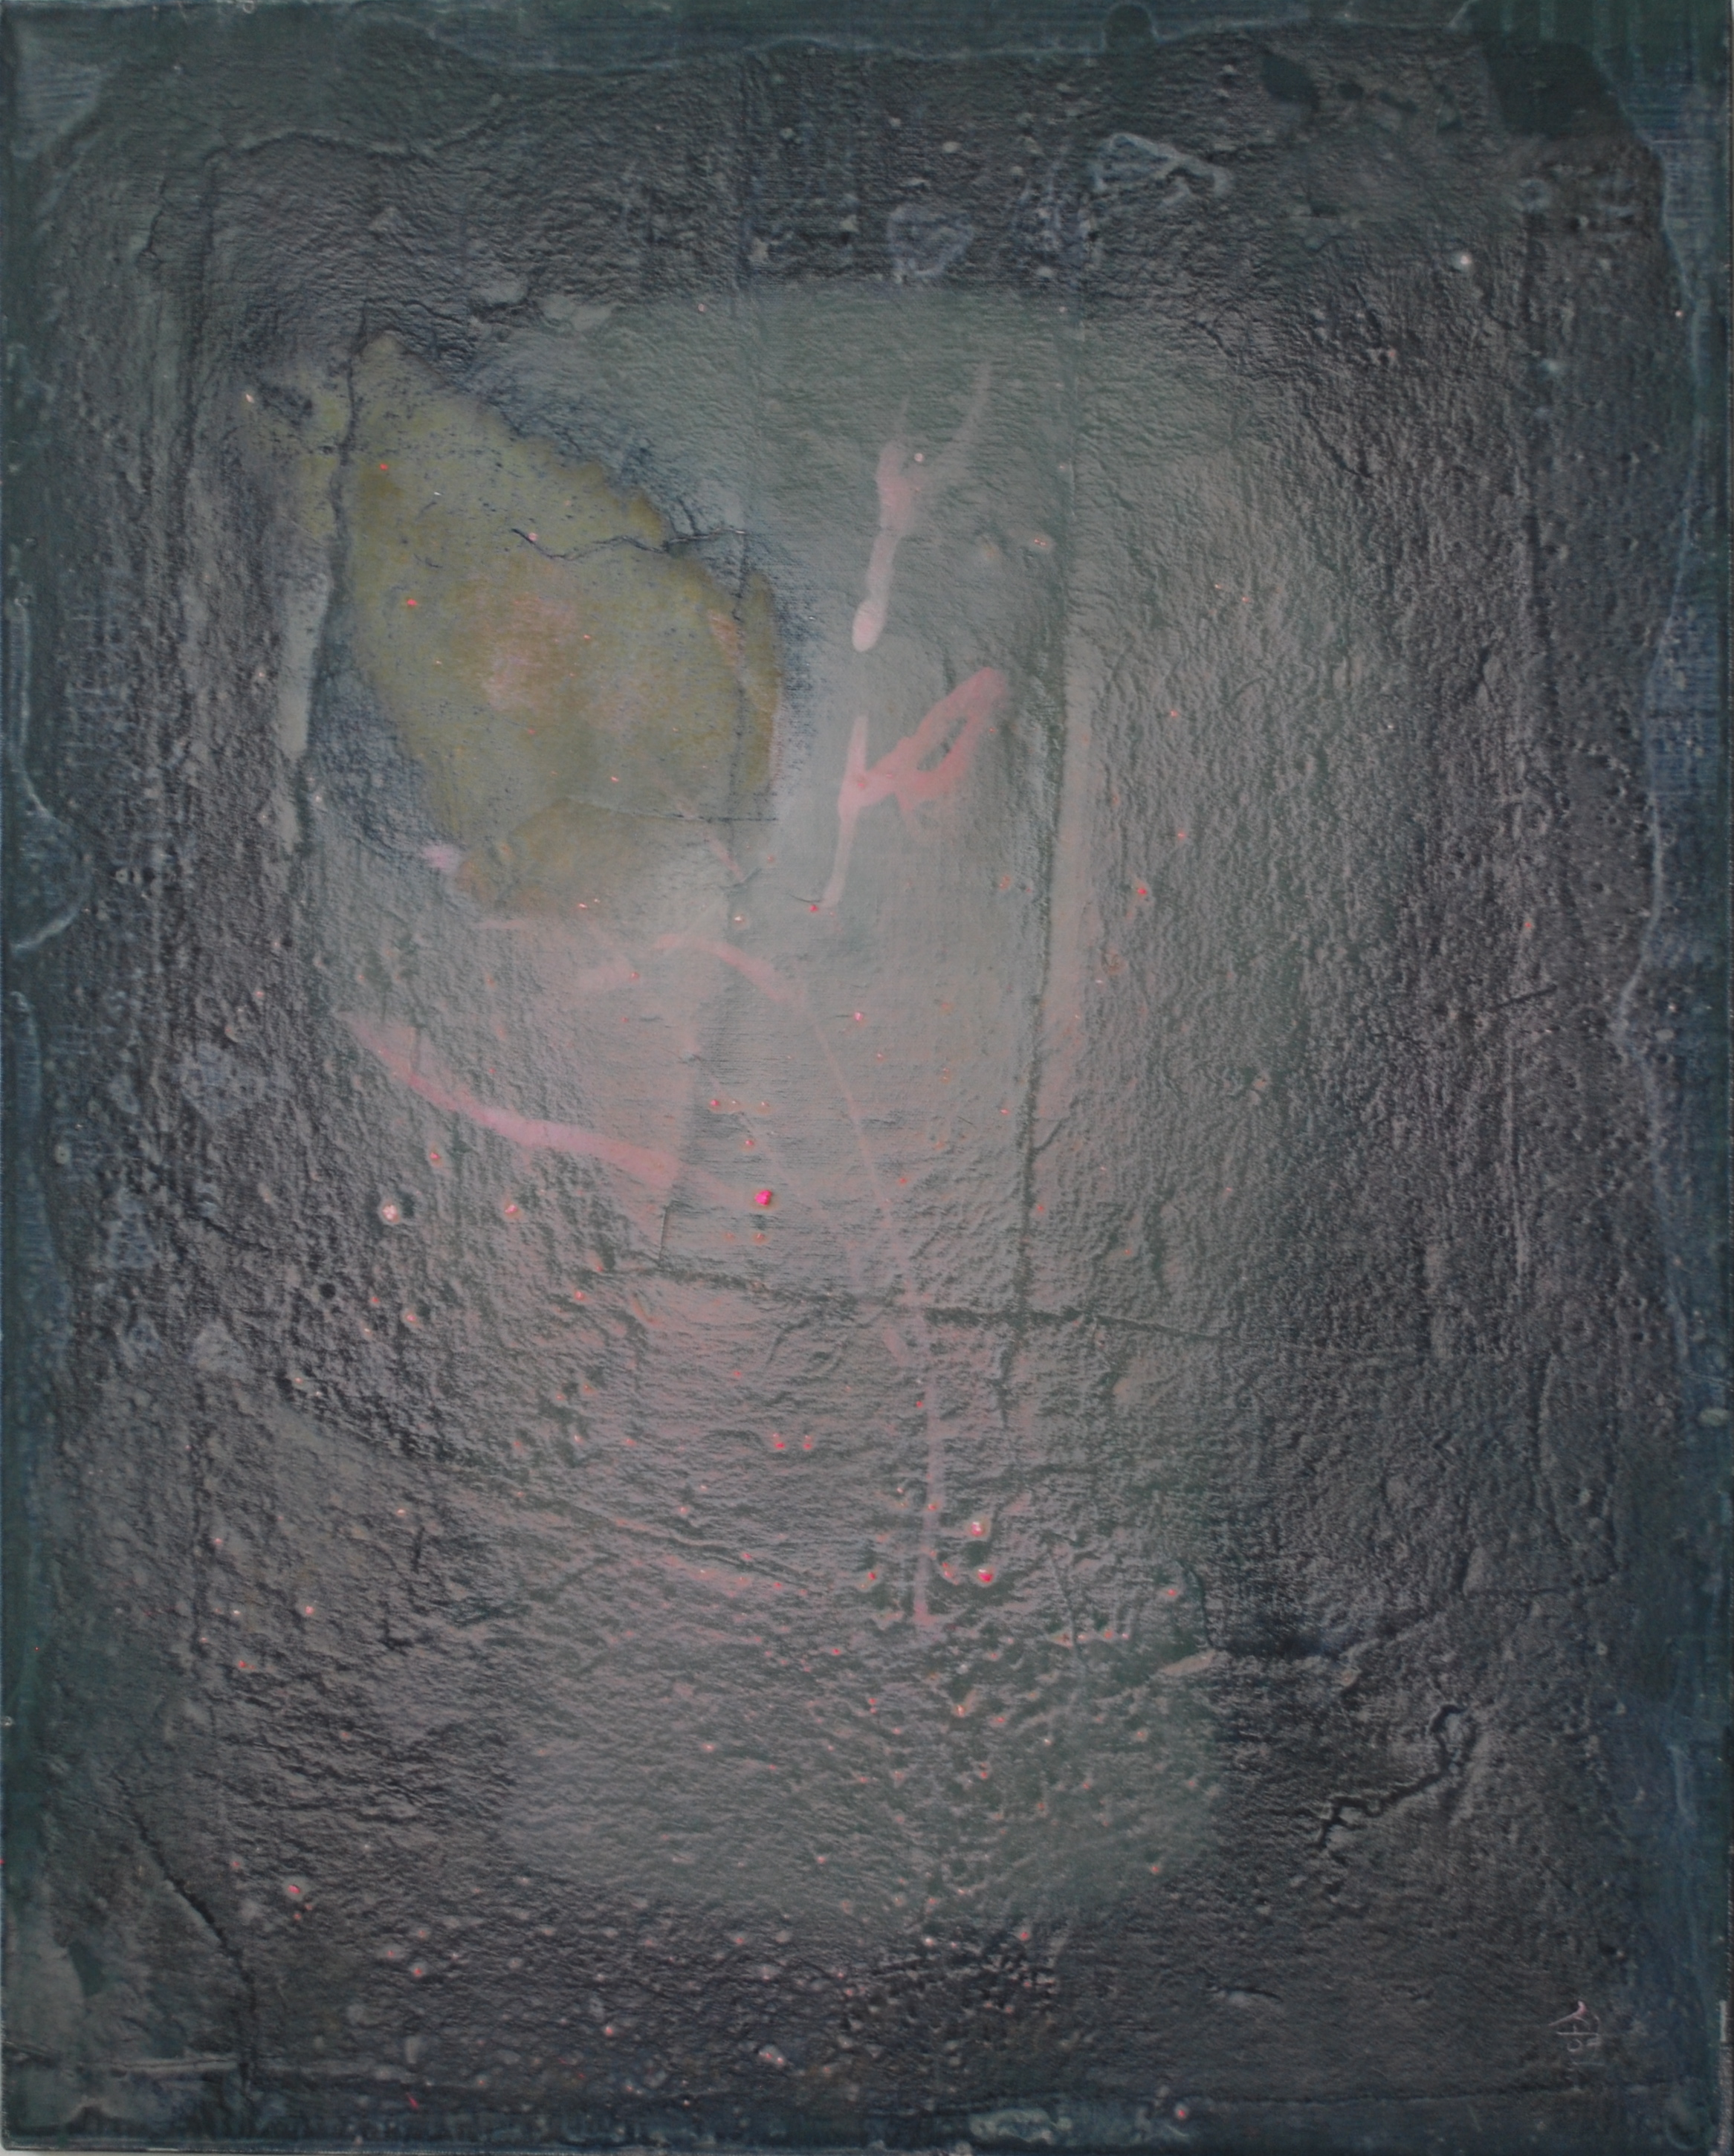 SoHyun Bae, Wrapped Shards: Vessel #3, 2003, rice-paper and pure pigment on canvas, 30 x 24 inches